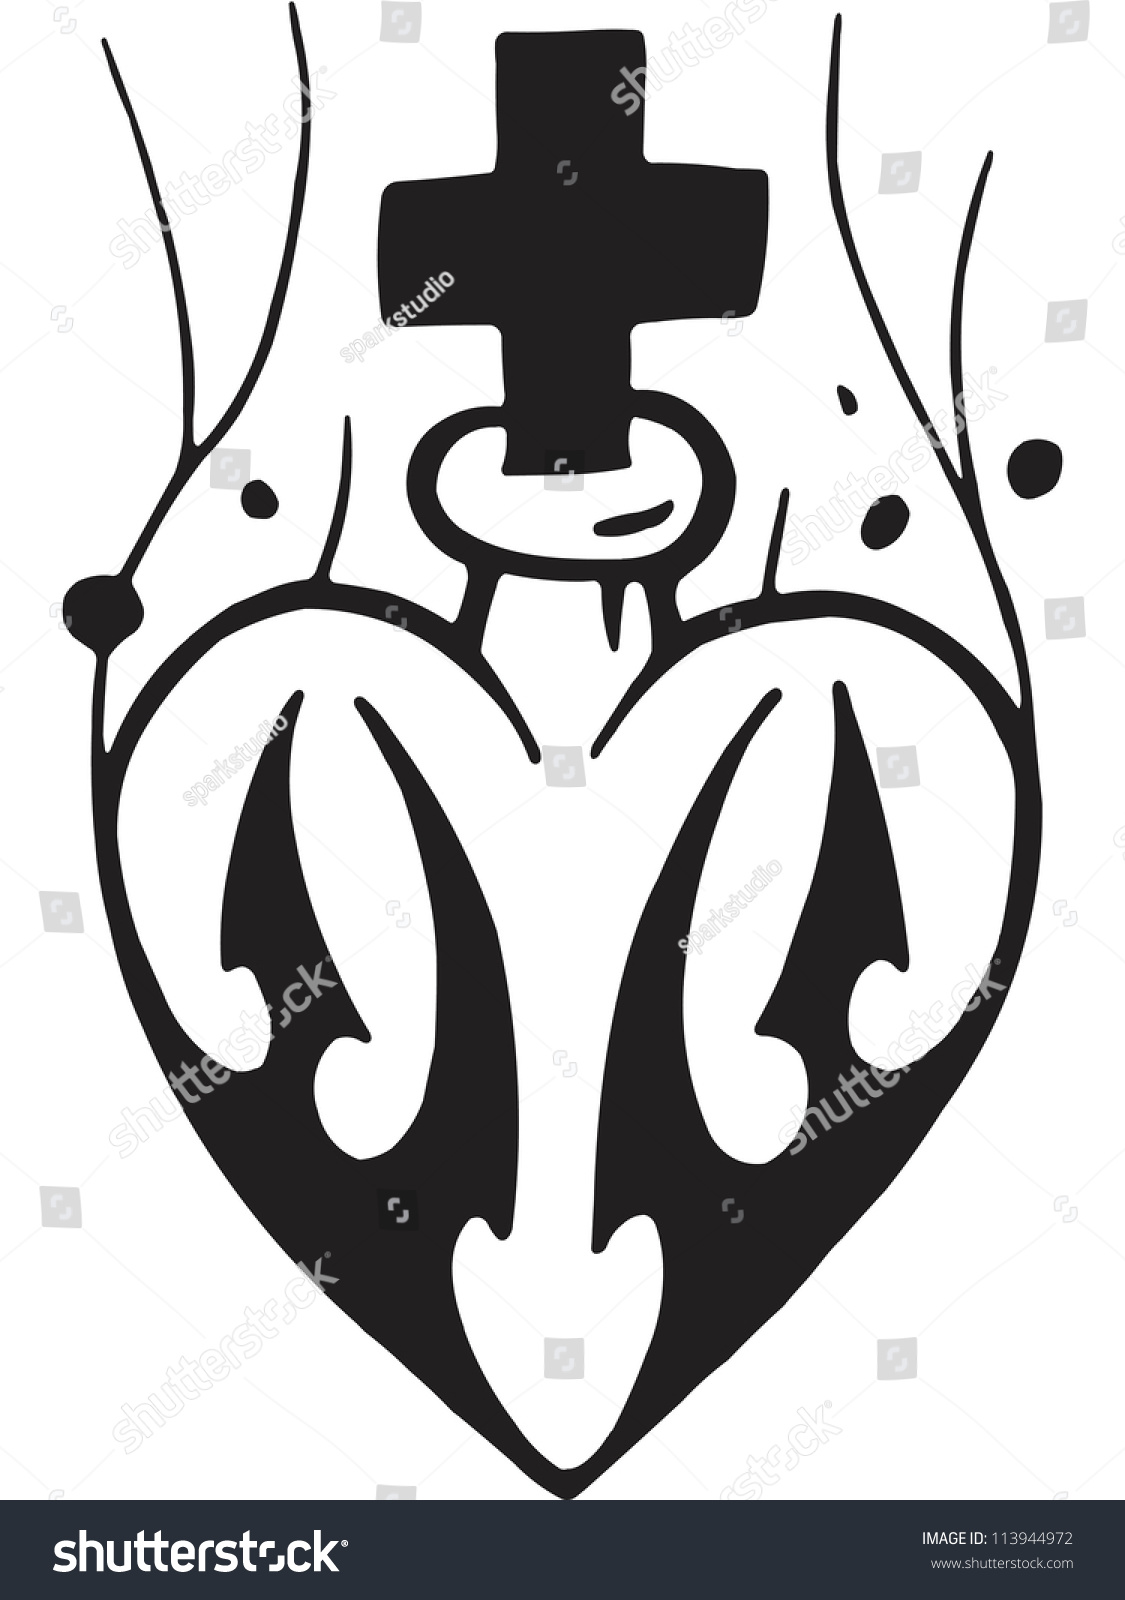 A Black And White Version Of Stencil Of A Heart And Cross Stock Photo 113944972 ...